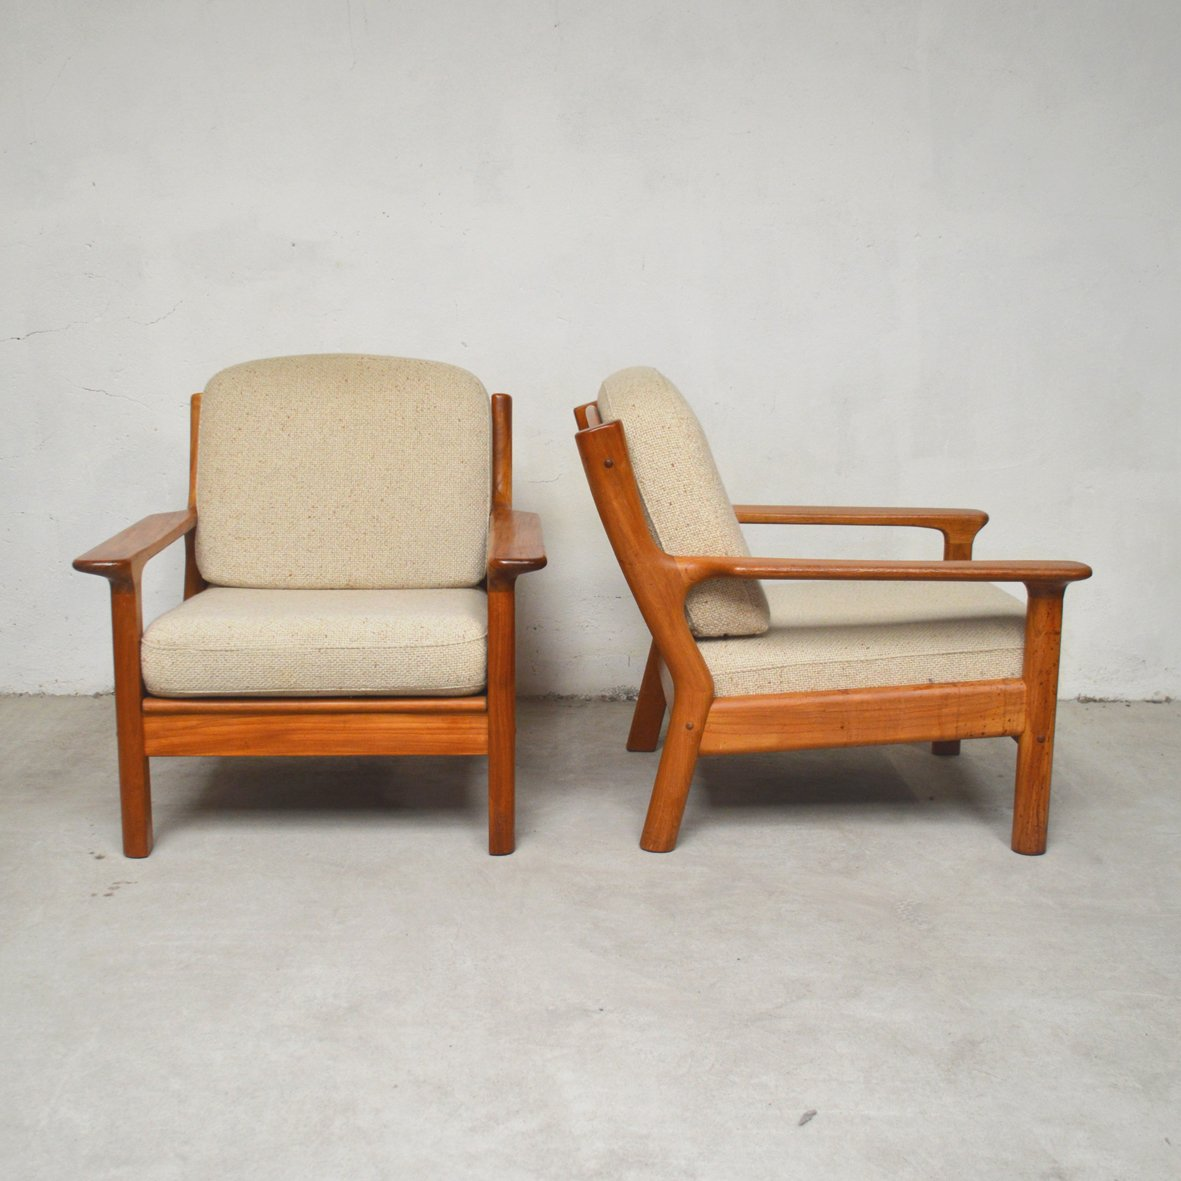 Vintage Möbel Oranienstraße Vintage Armchairs By S Burchardt Nielsen For Möbel Bb Fabrik 1970s Set Of 2